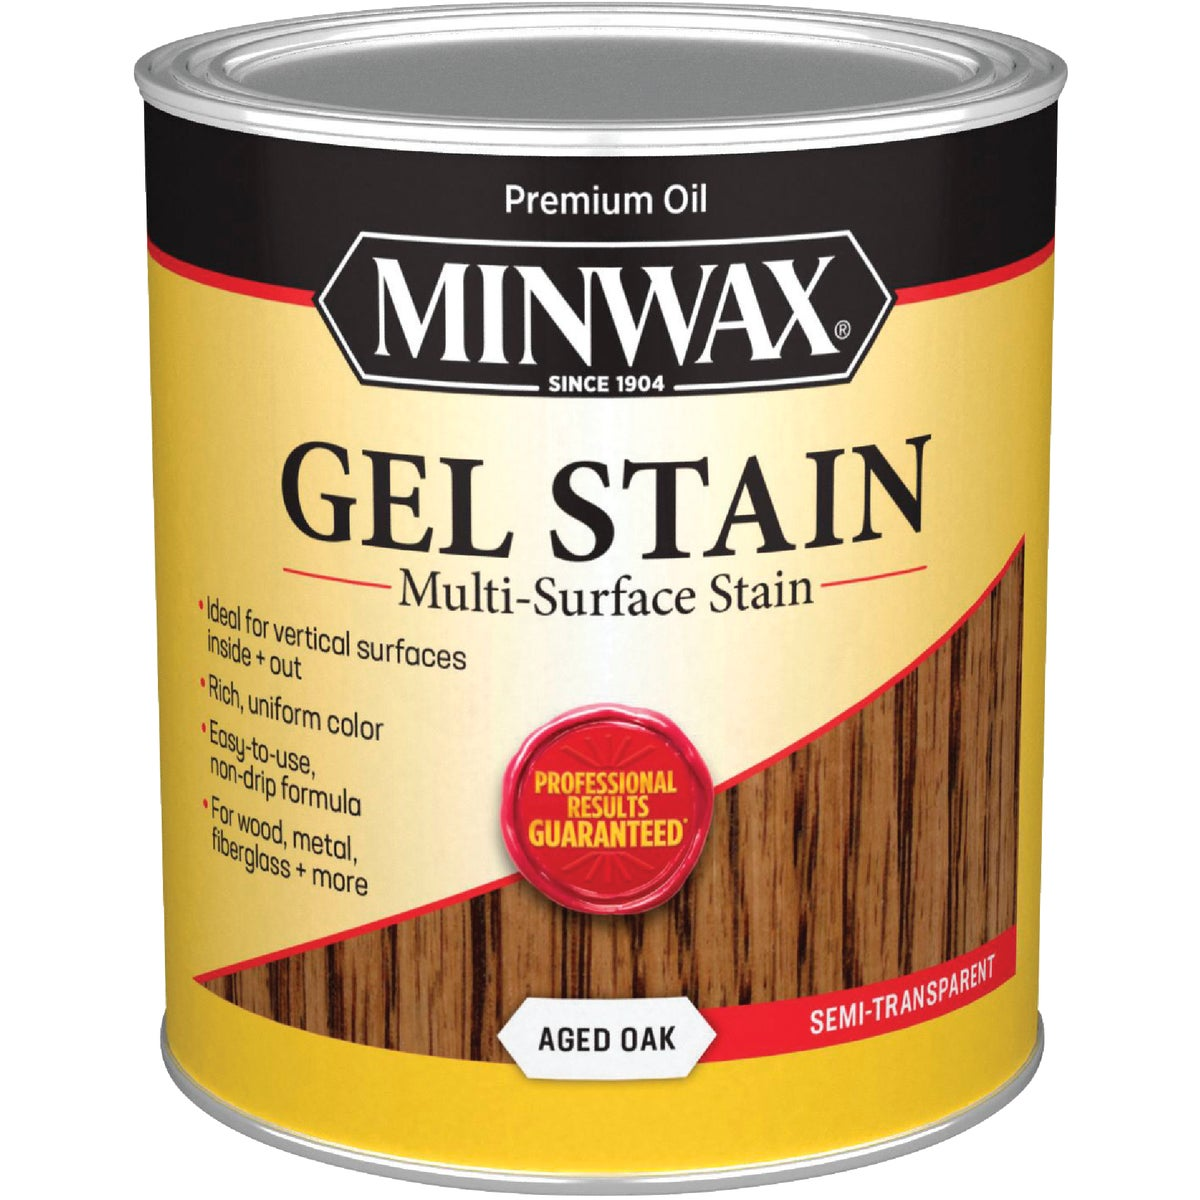 AGED OAK GEL STAIN - 66020 by Minwax Company